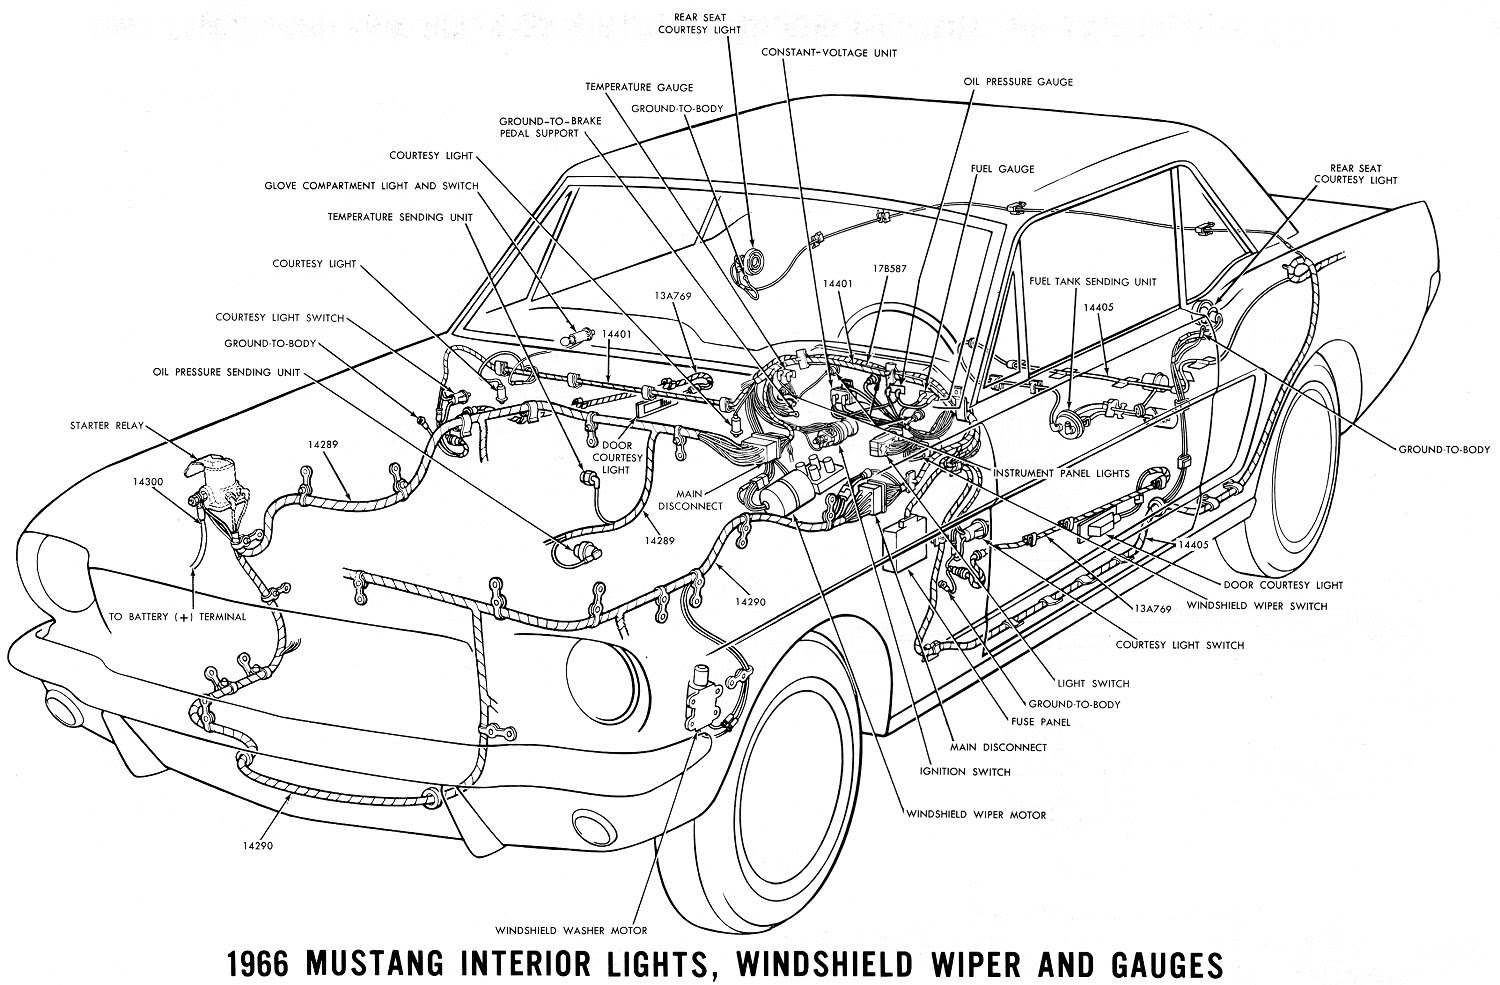 B380 1966 Mustang Windshield Wiper Wiring Diagram Wiring Library